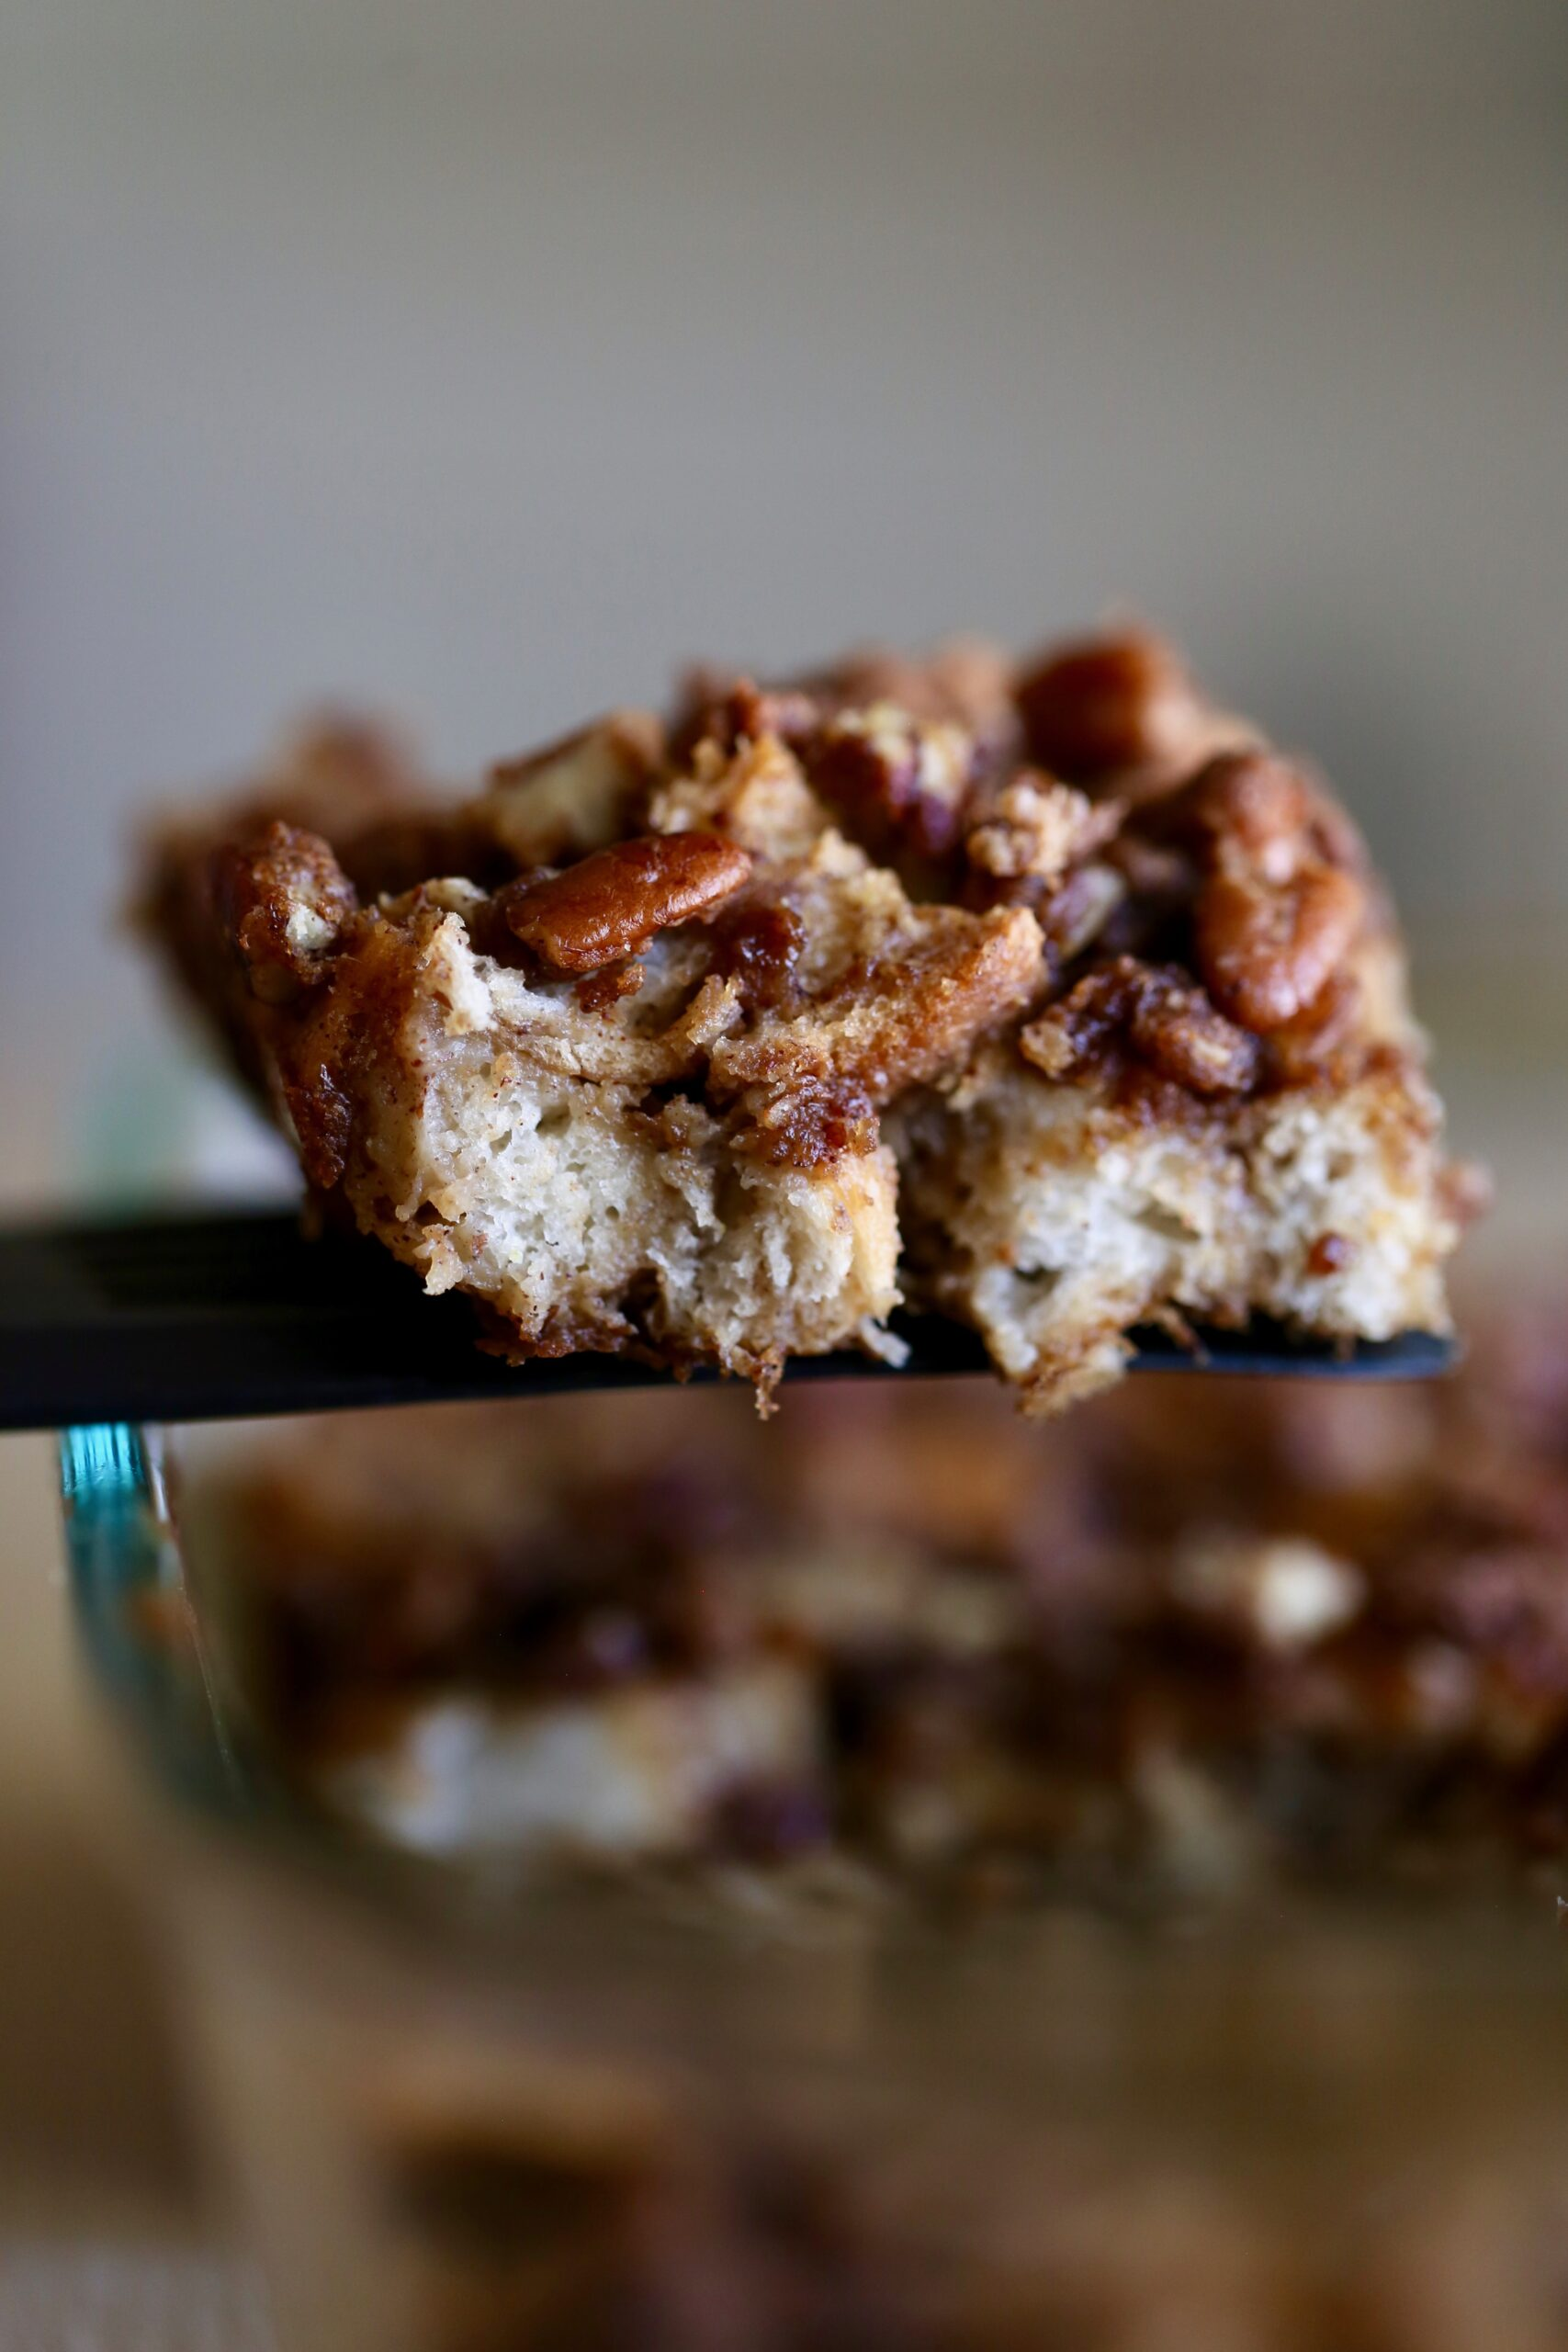 a hearty serving of vegan french toast casserole being lifted out of a casserole dish